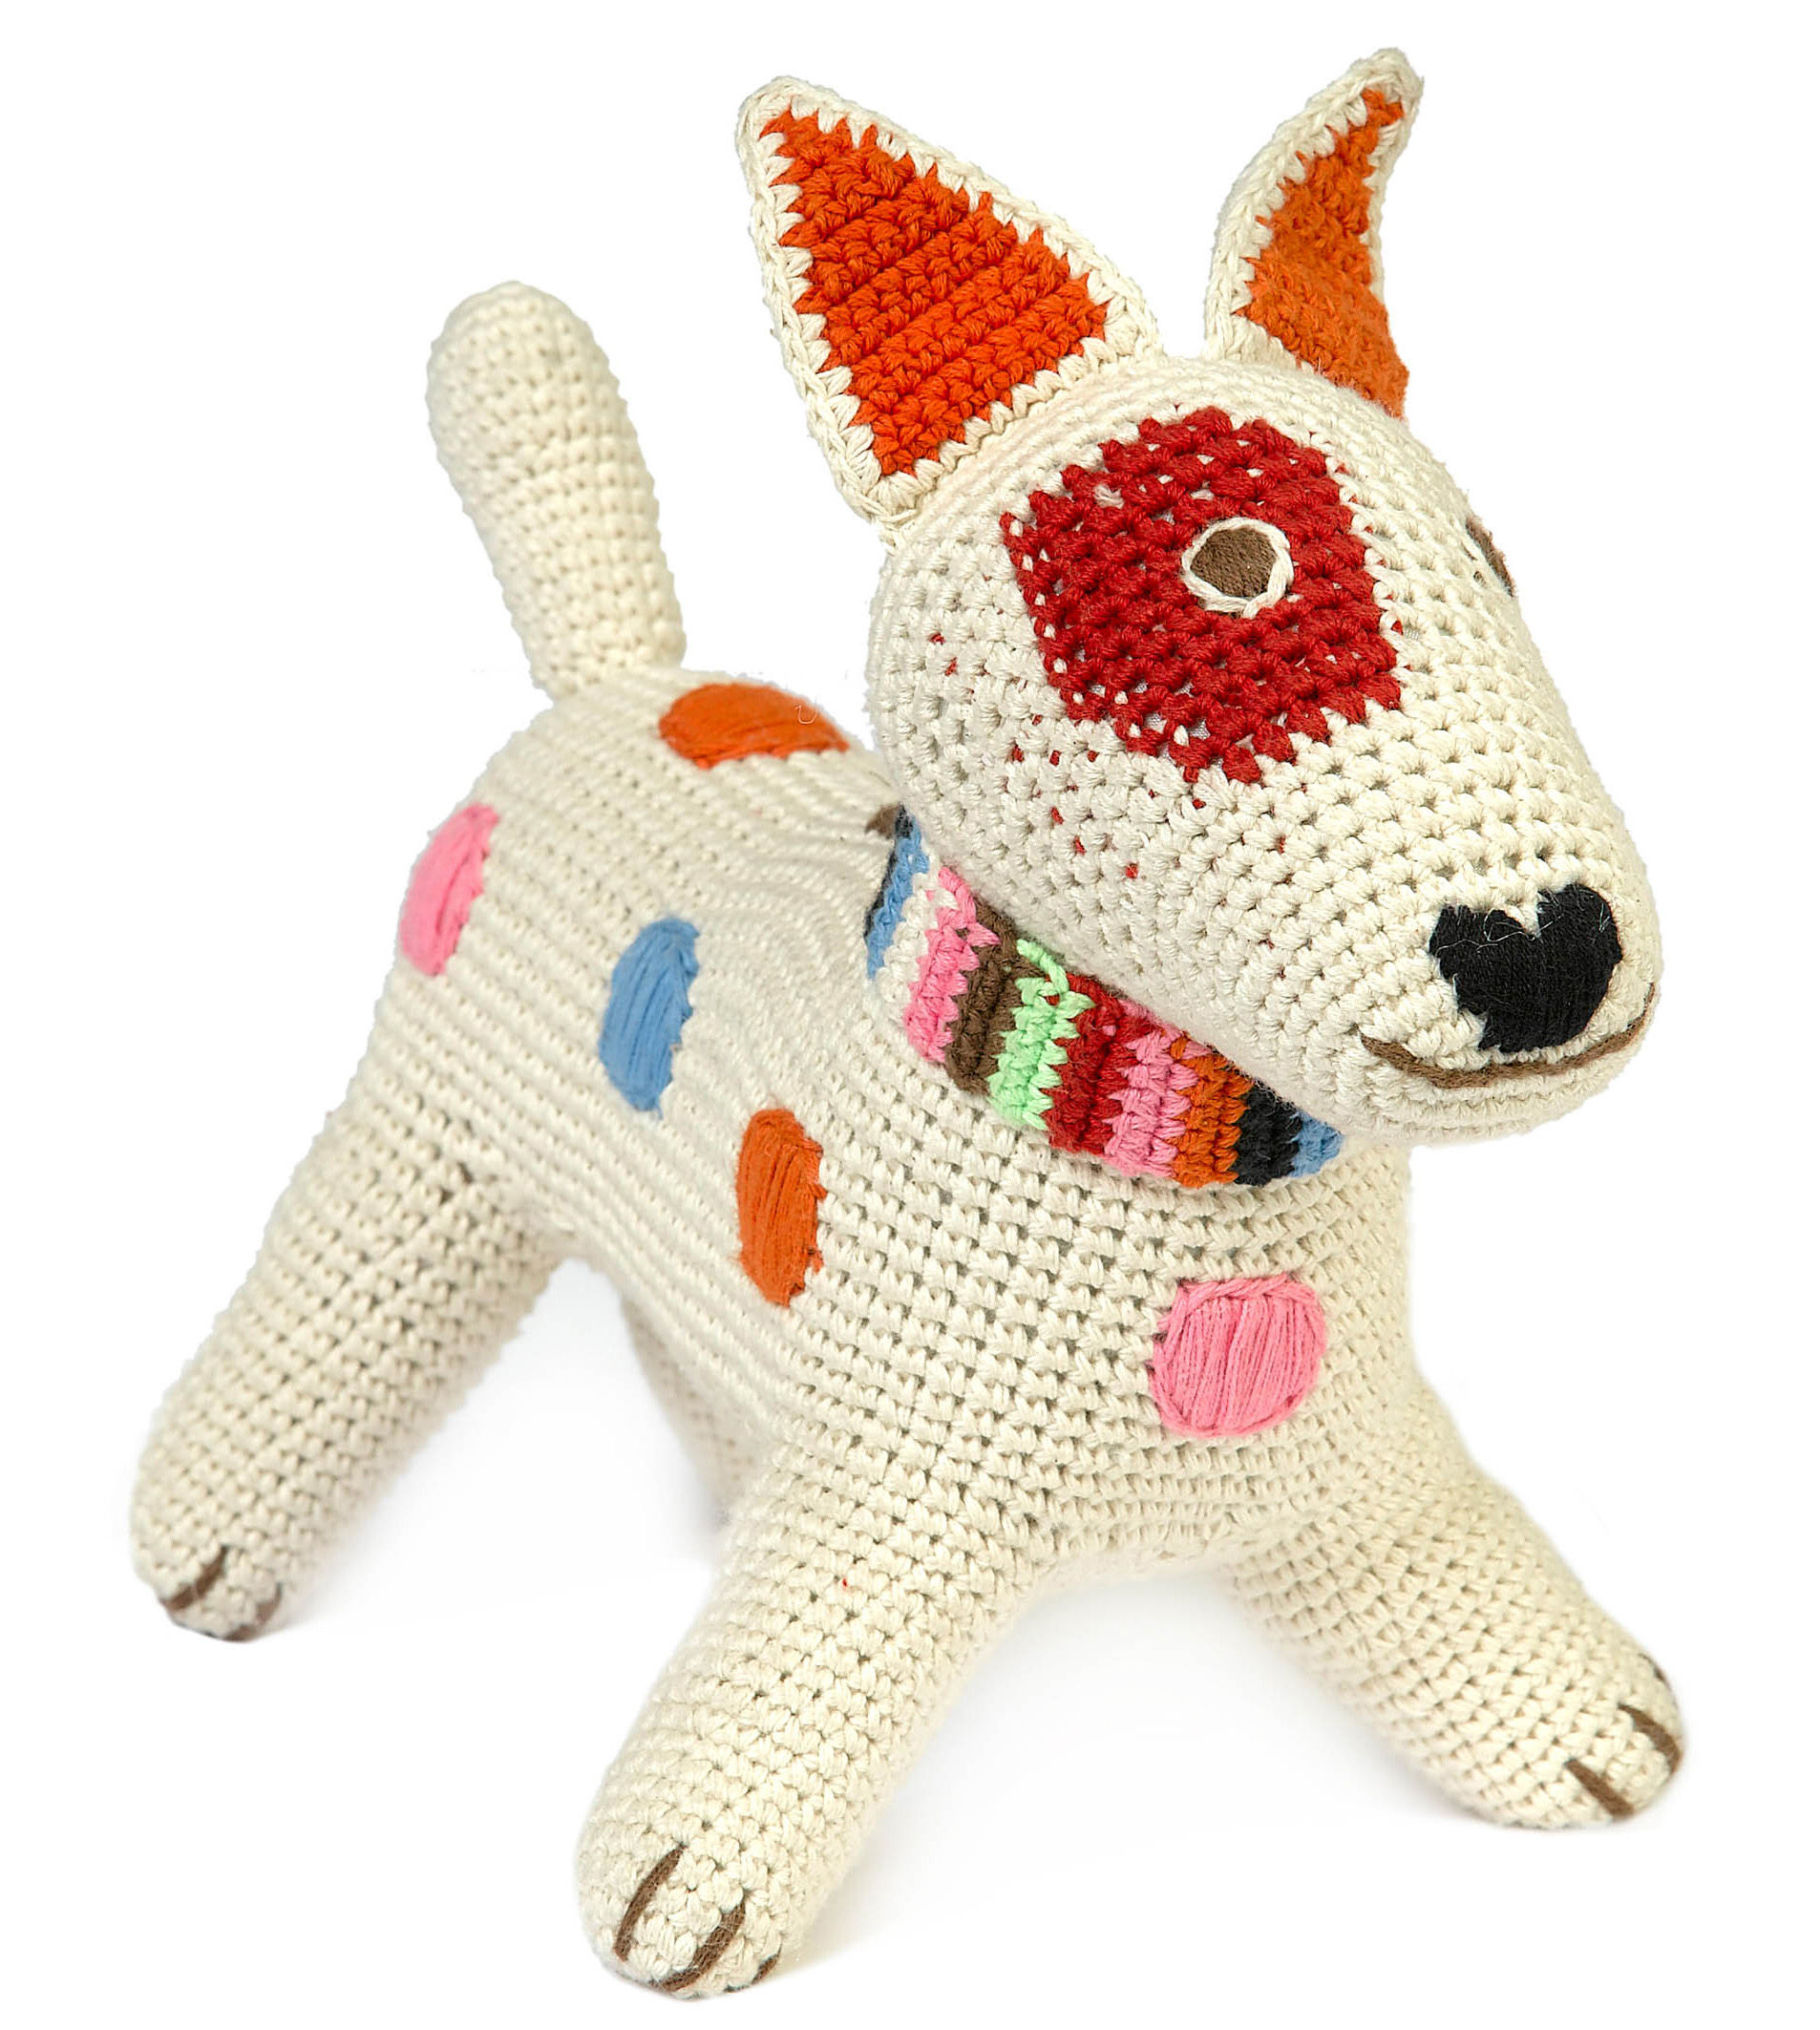 Decoration - Children's Home Accessories - Fox Terrier Cuddly toy - Crochet cuddly toy by Anne-Claire Petit - Nature - Cotton